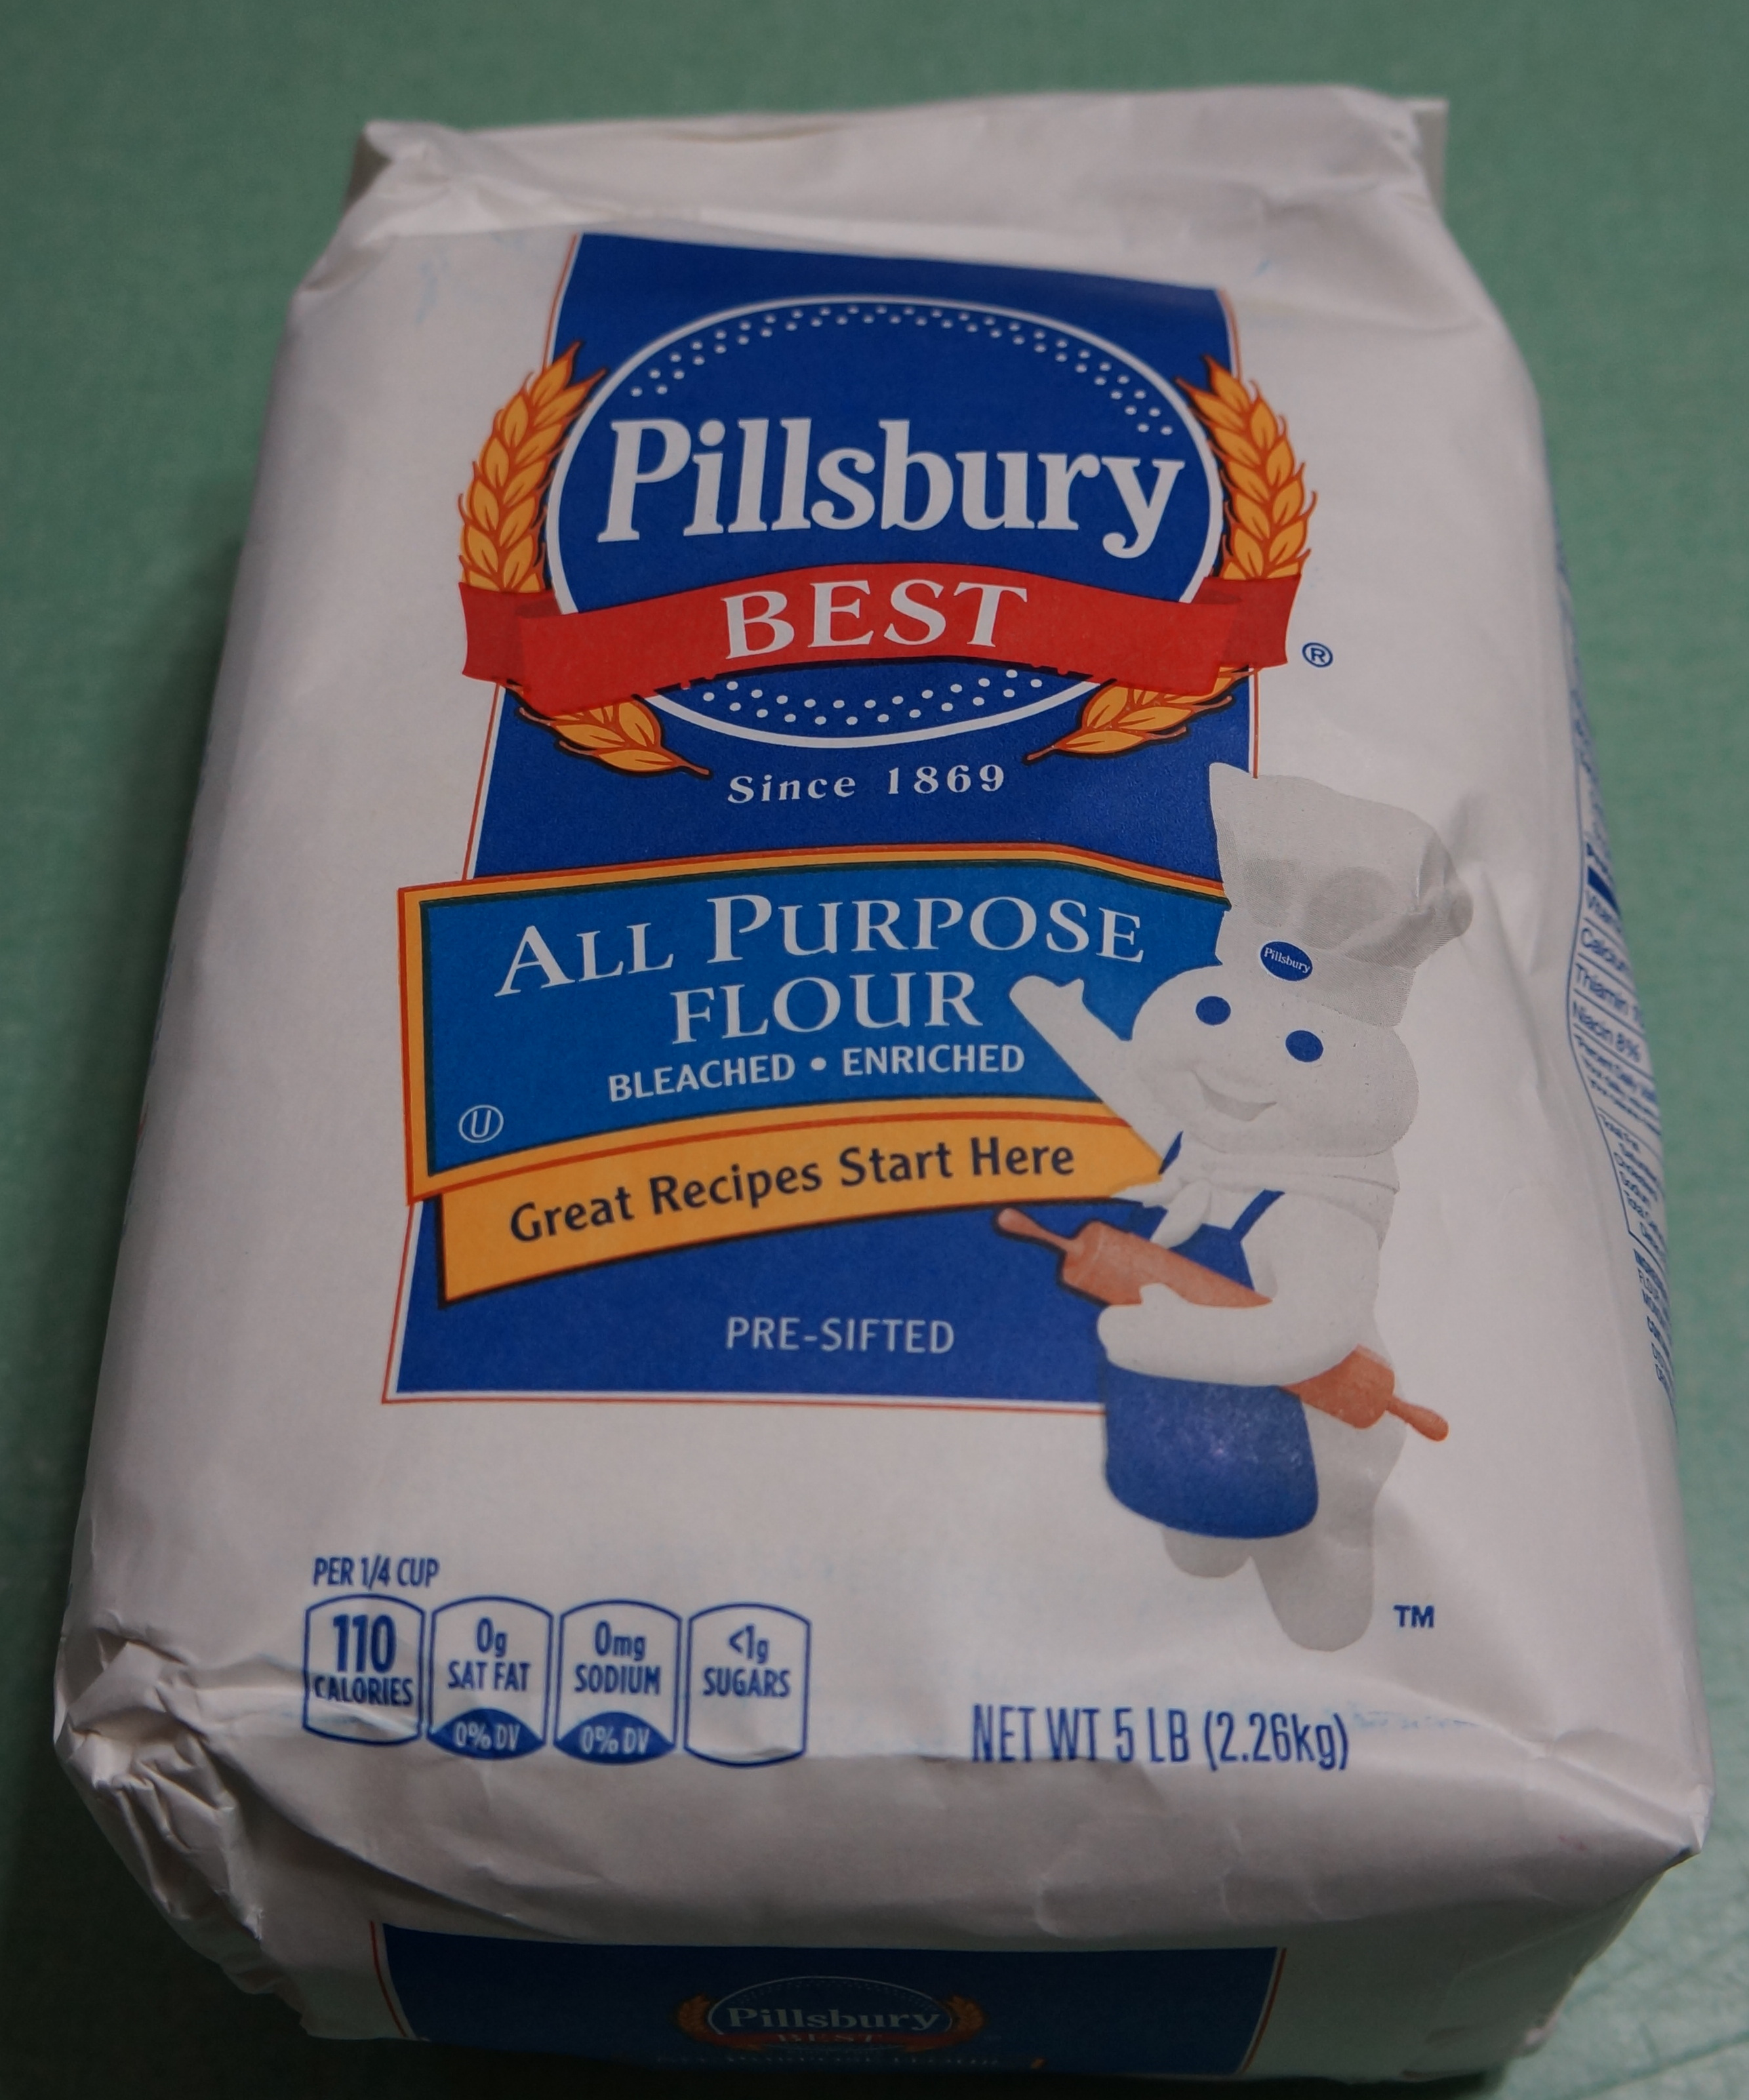 Weight of all purpose flour